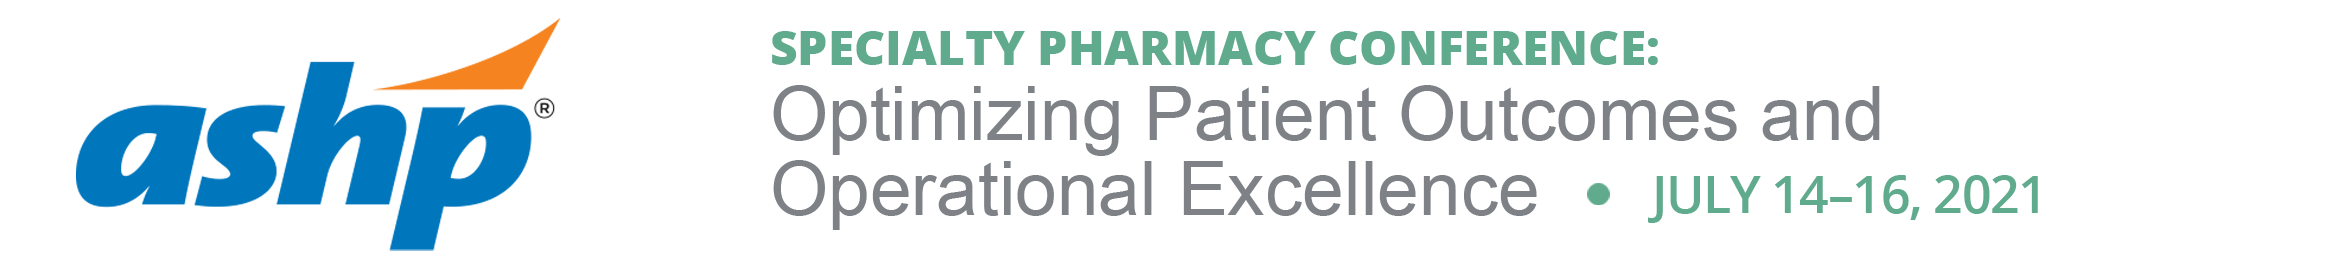 Specialty Pharmacy Conference Main banner